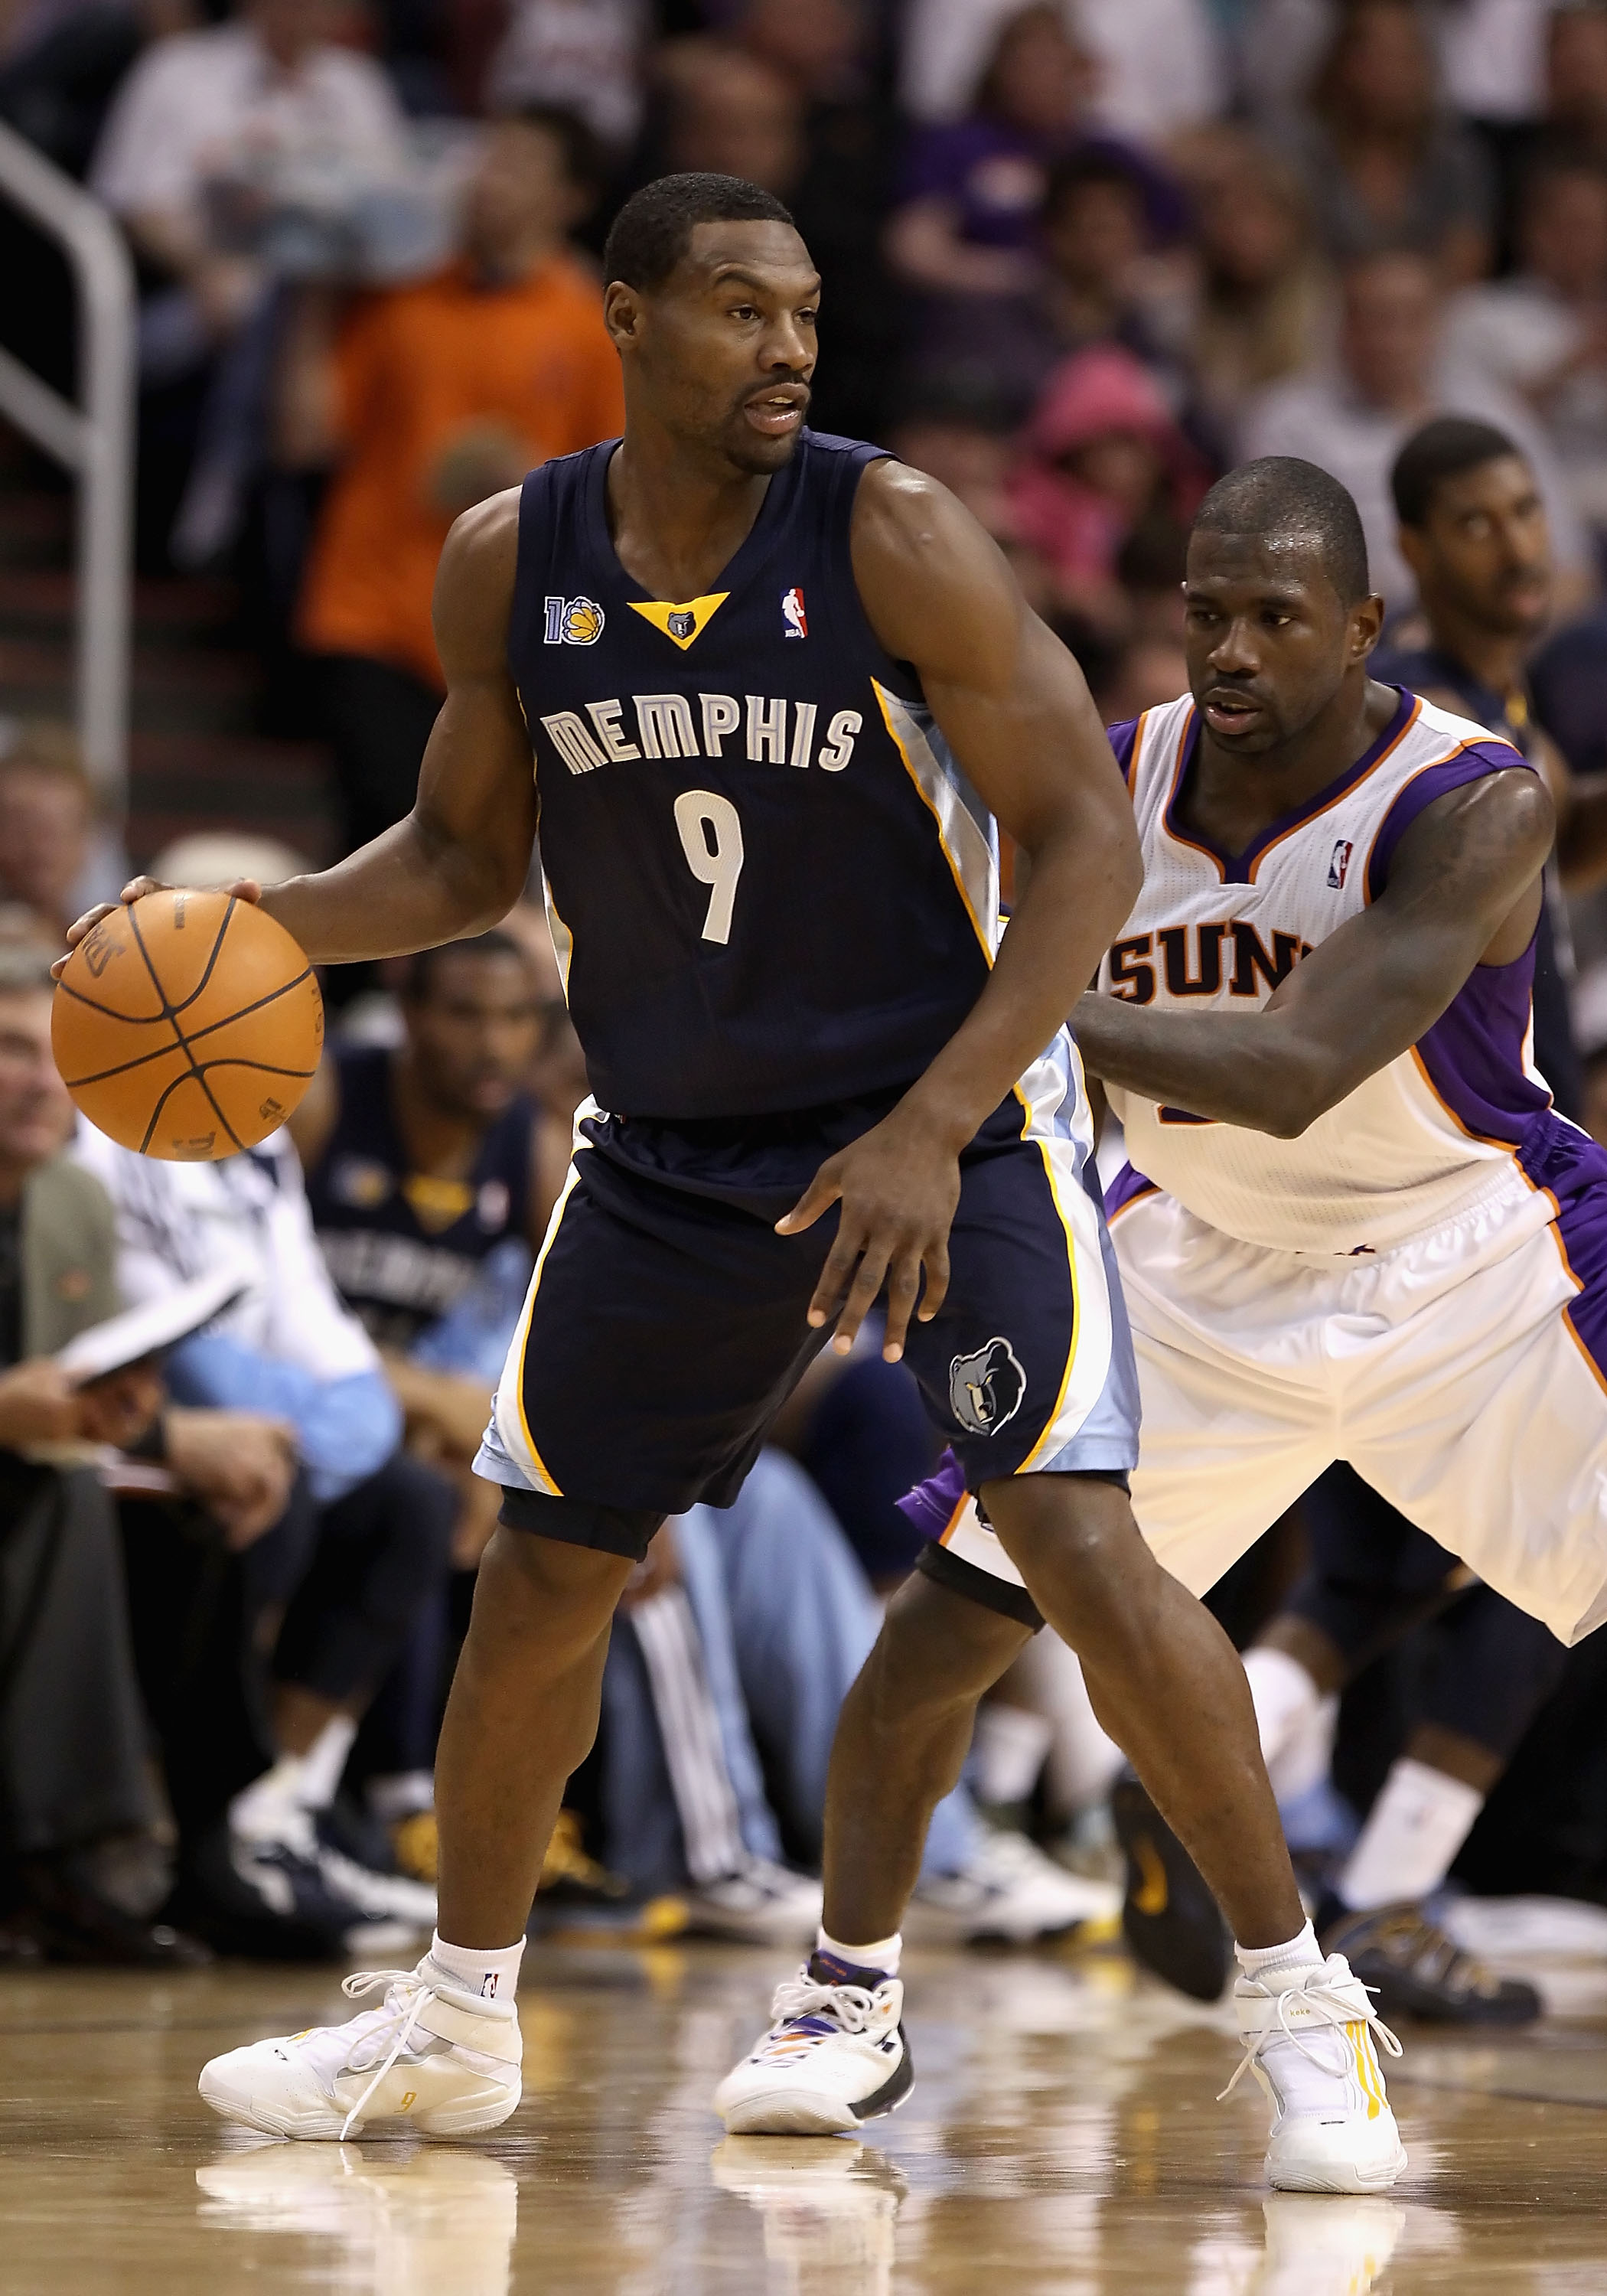 PHOENIX - NOVEMBER 05:  Tony Allen #9 of the Memphis Grizzlies handles the ball under pressure from Jason Richardson #23 of the Phoenix Suns during the NBA game at US Airways Center on November 5, 2010 in Phoenix, Arizona. NOTE TO USER: User expressly ack